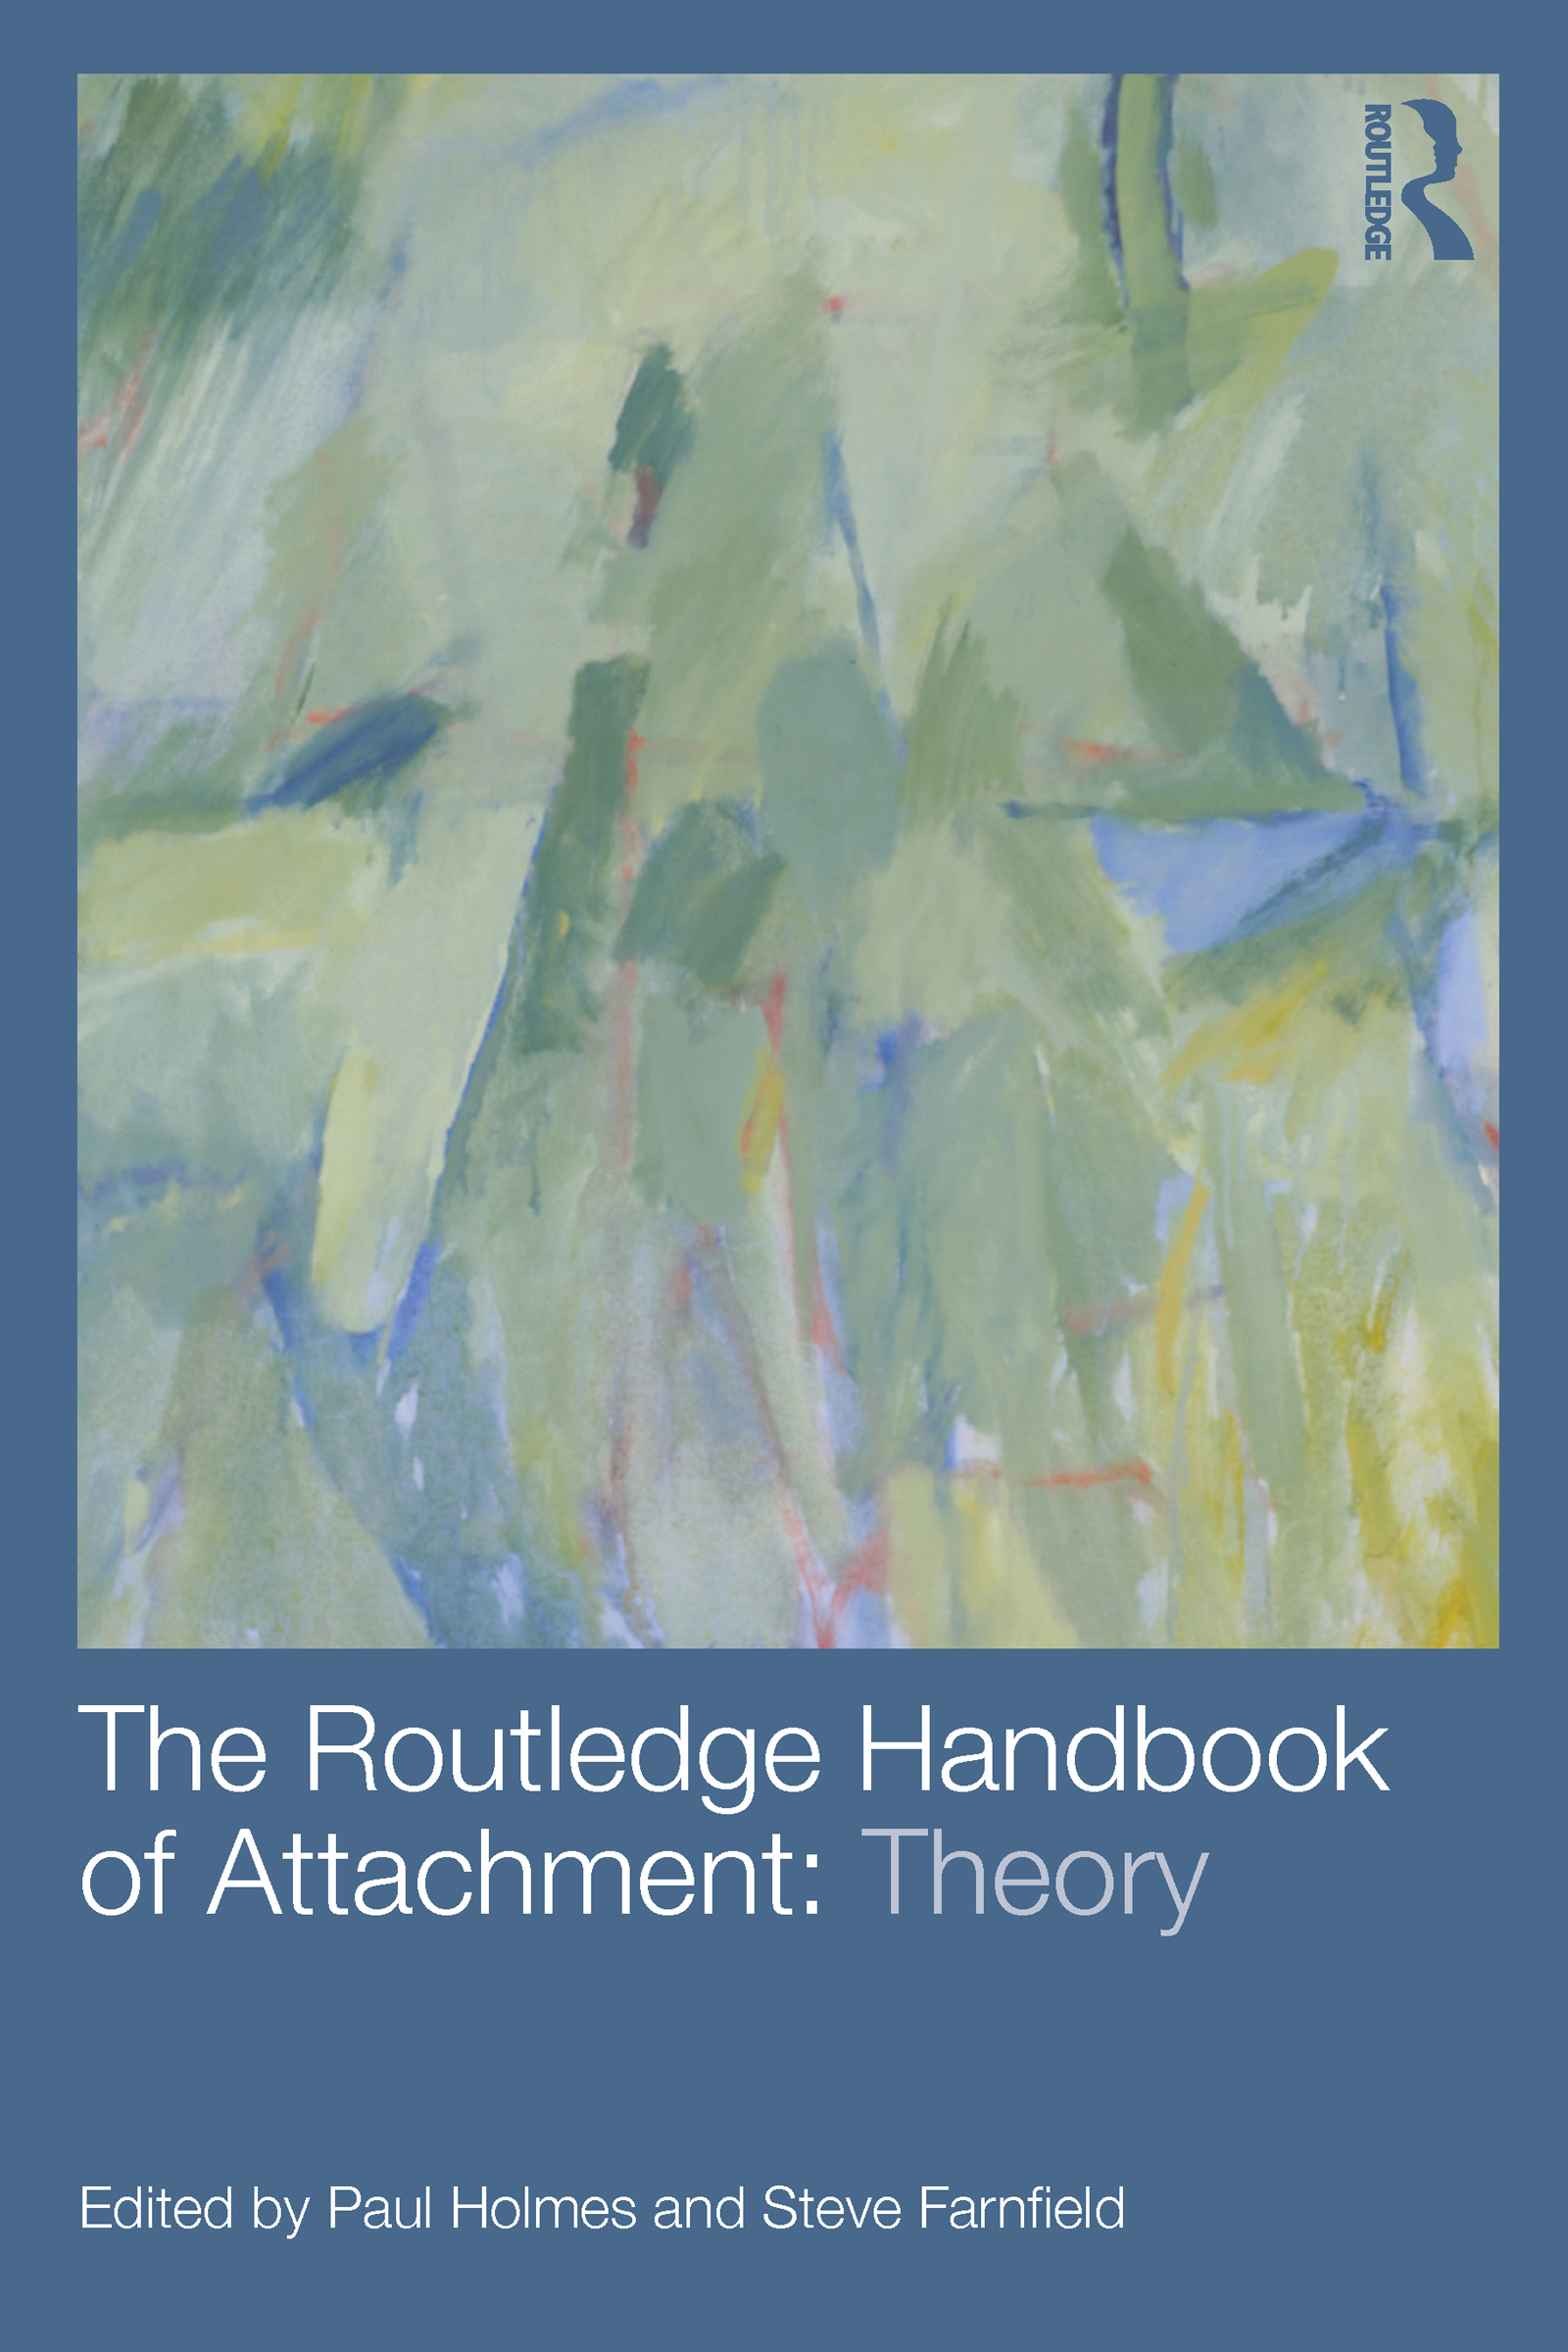 The Routledge Handbook of Attachment: Theory: 1st Edition (Paperback) book cover